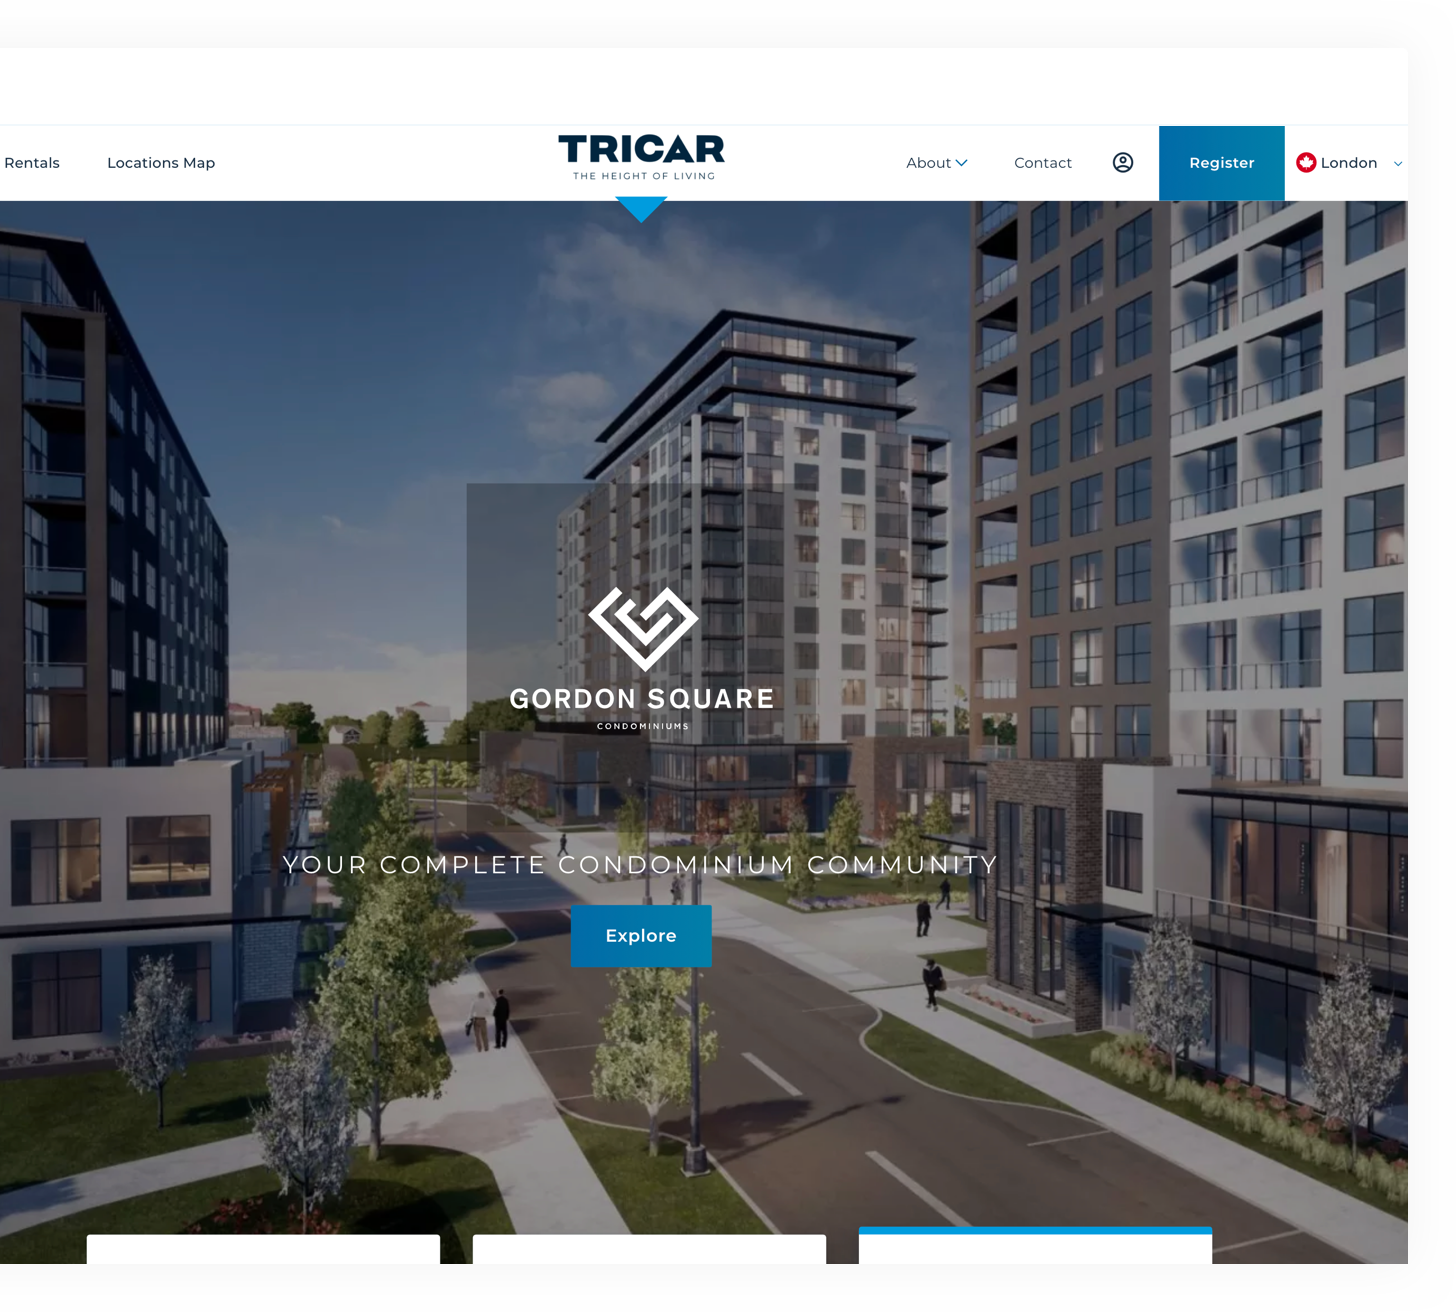 Tricar home page loaded on a desktop web browser, showing apartment buildings on a street view